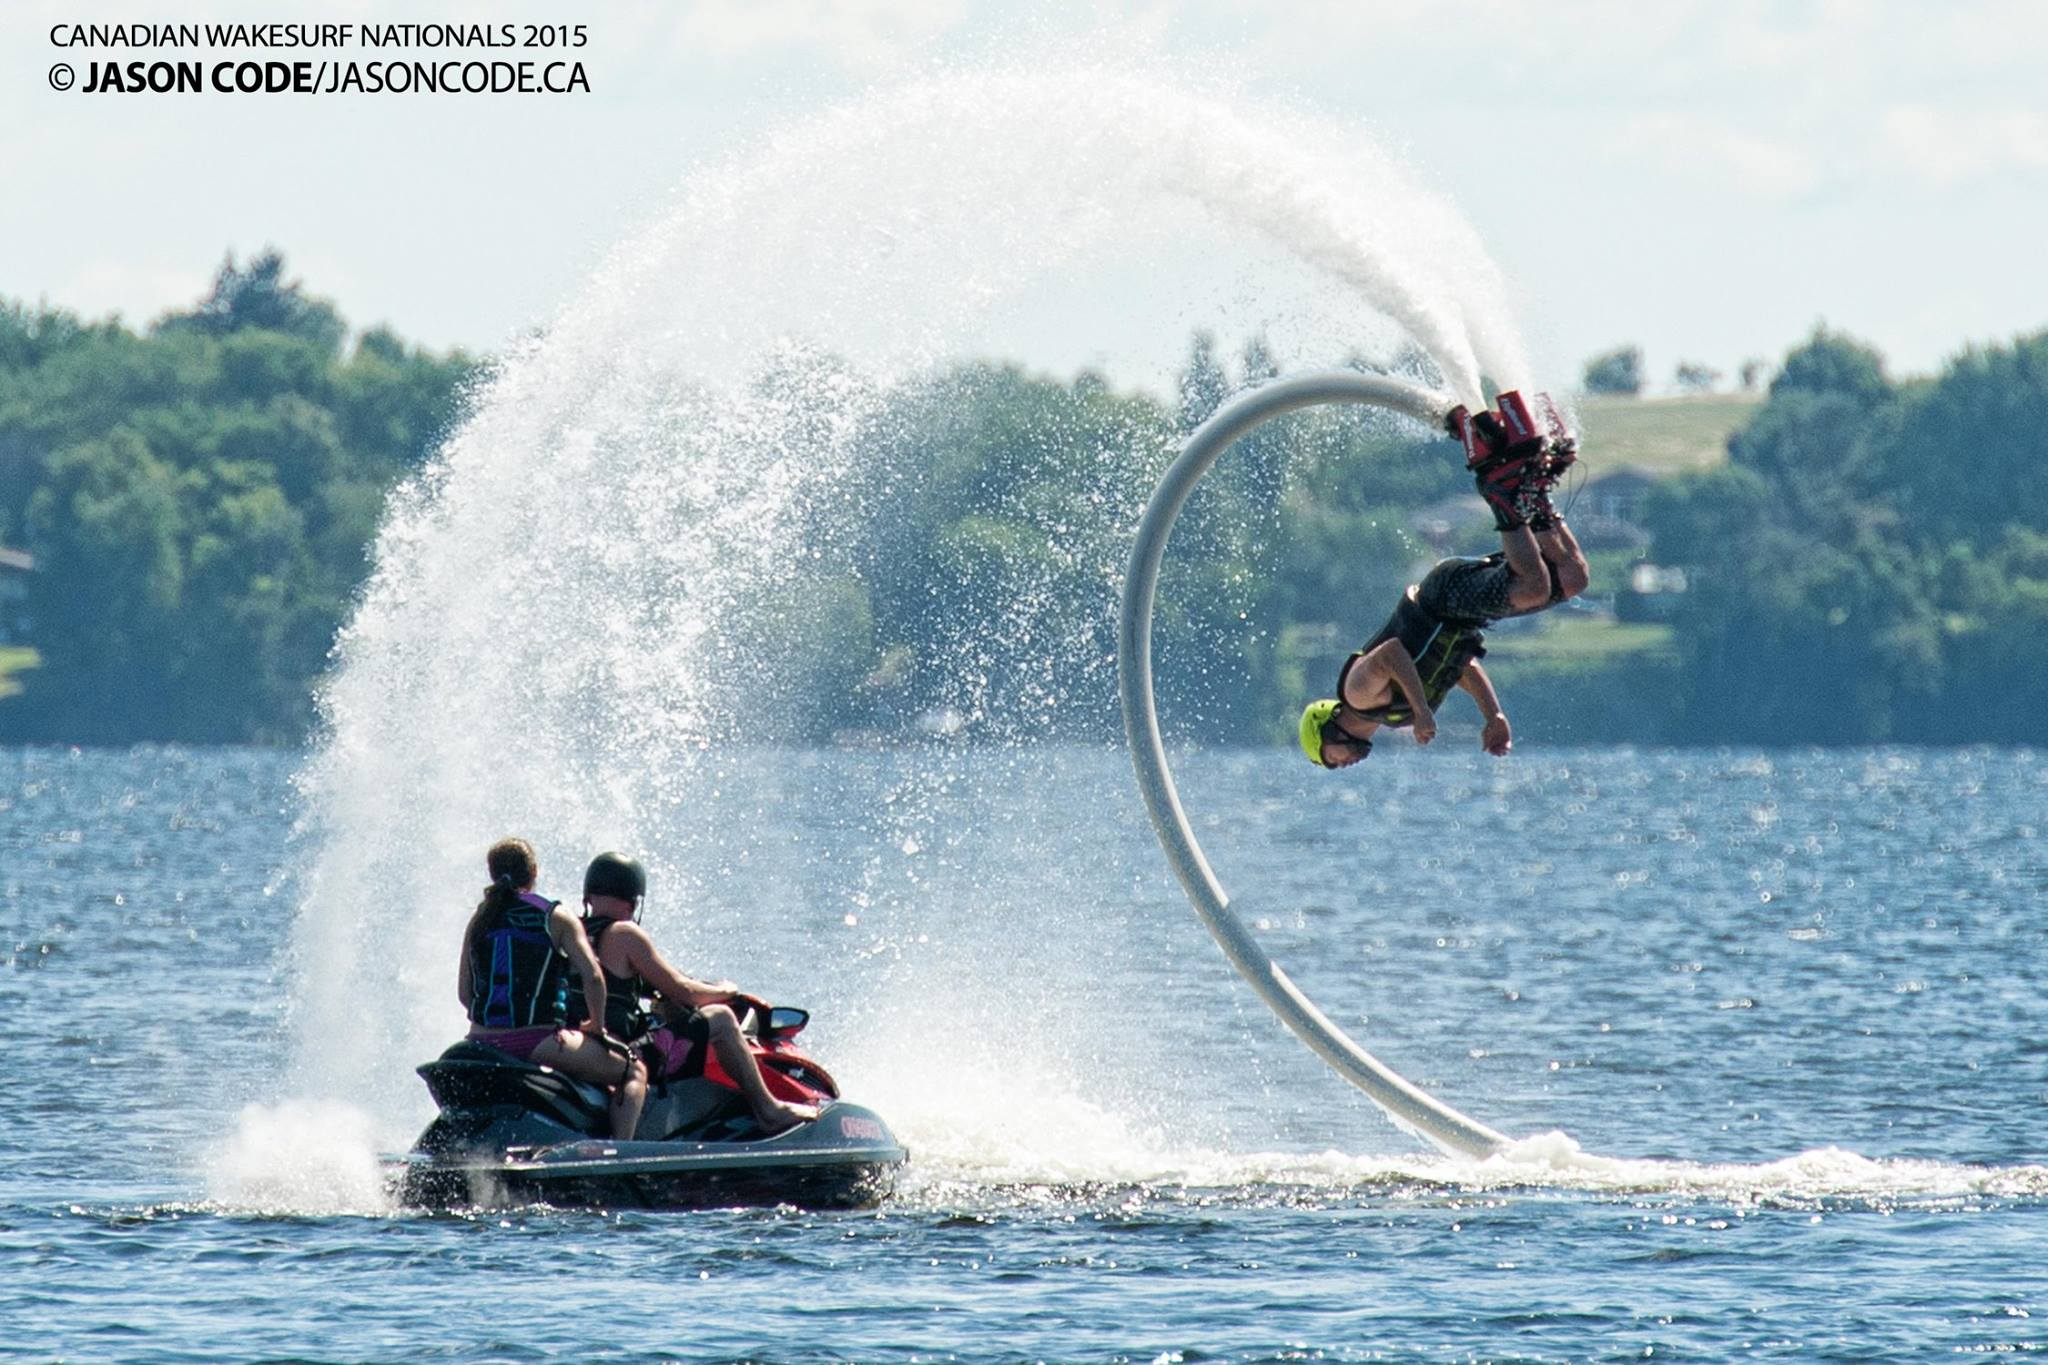 Flyboard at Wake Surf Nationals